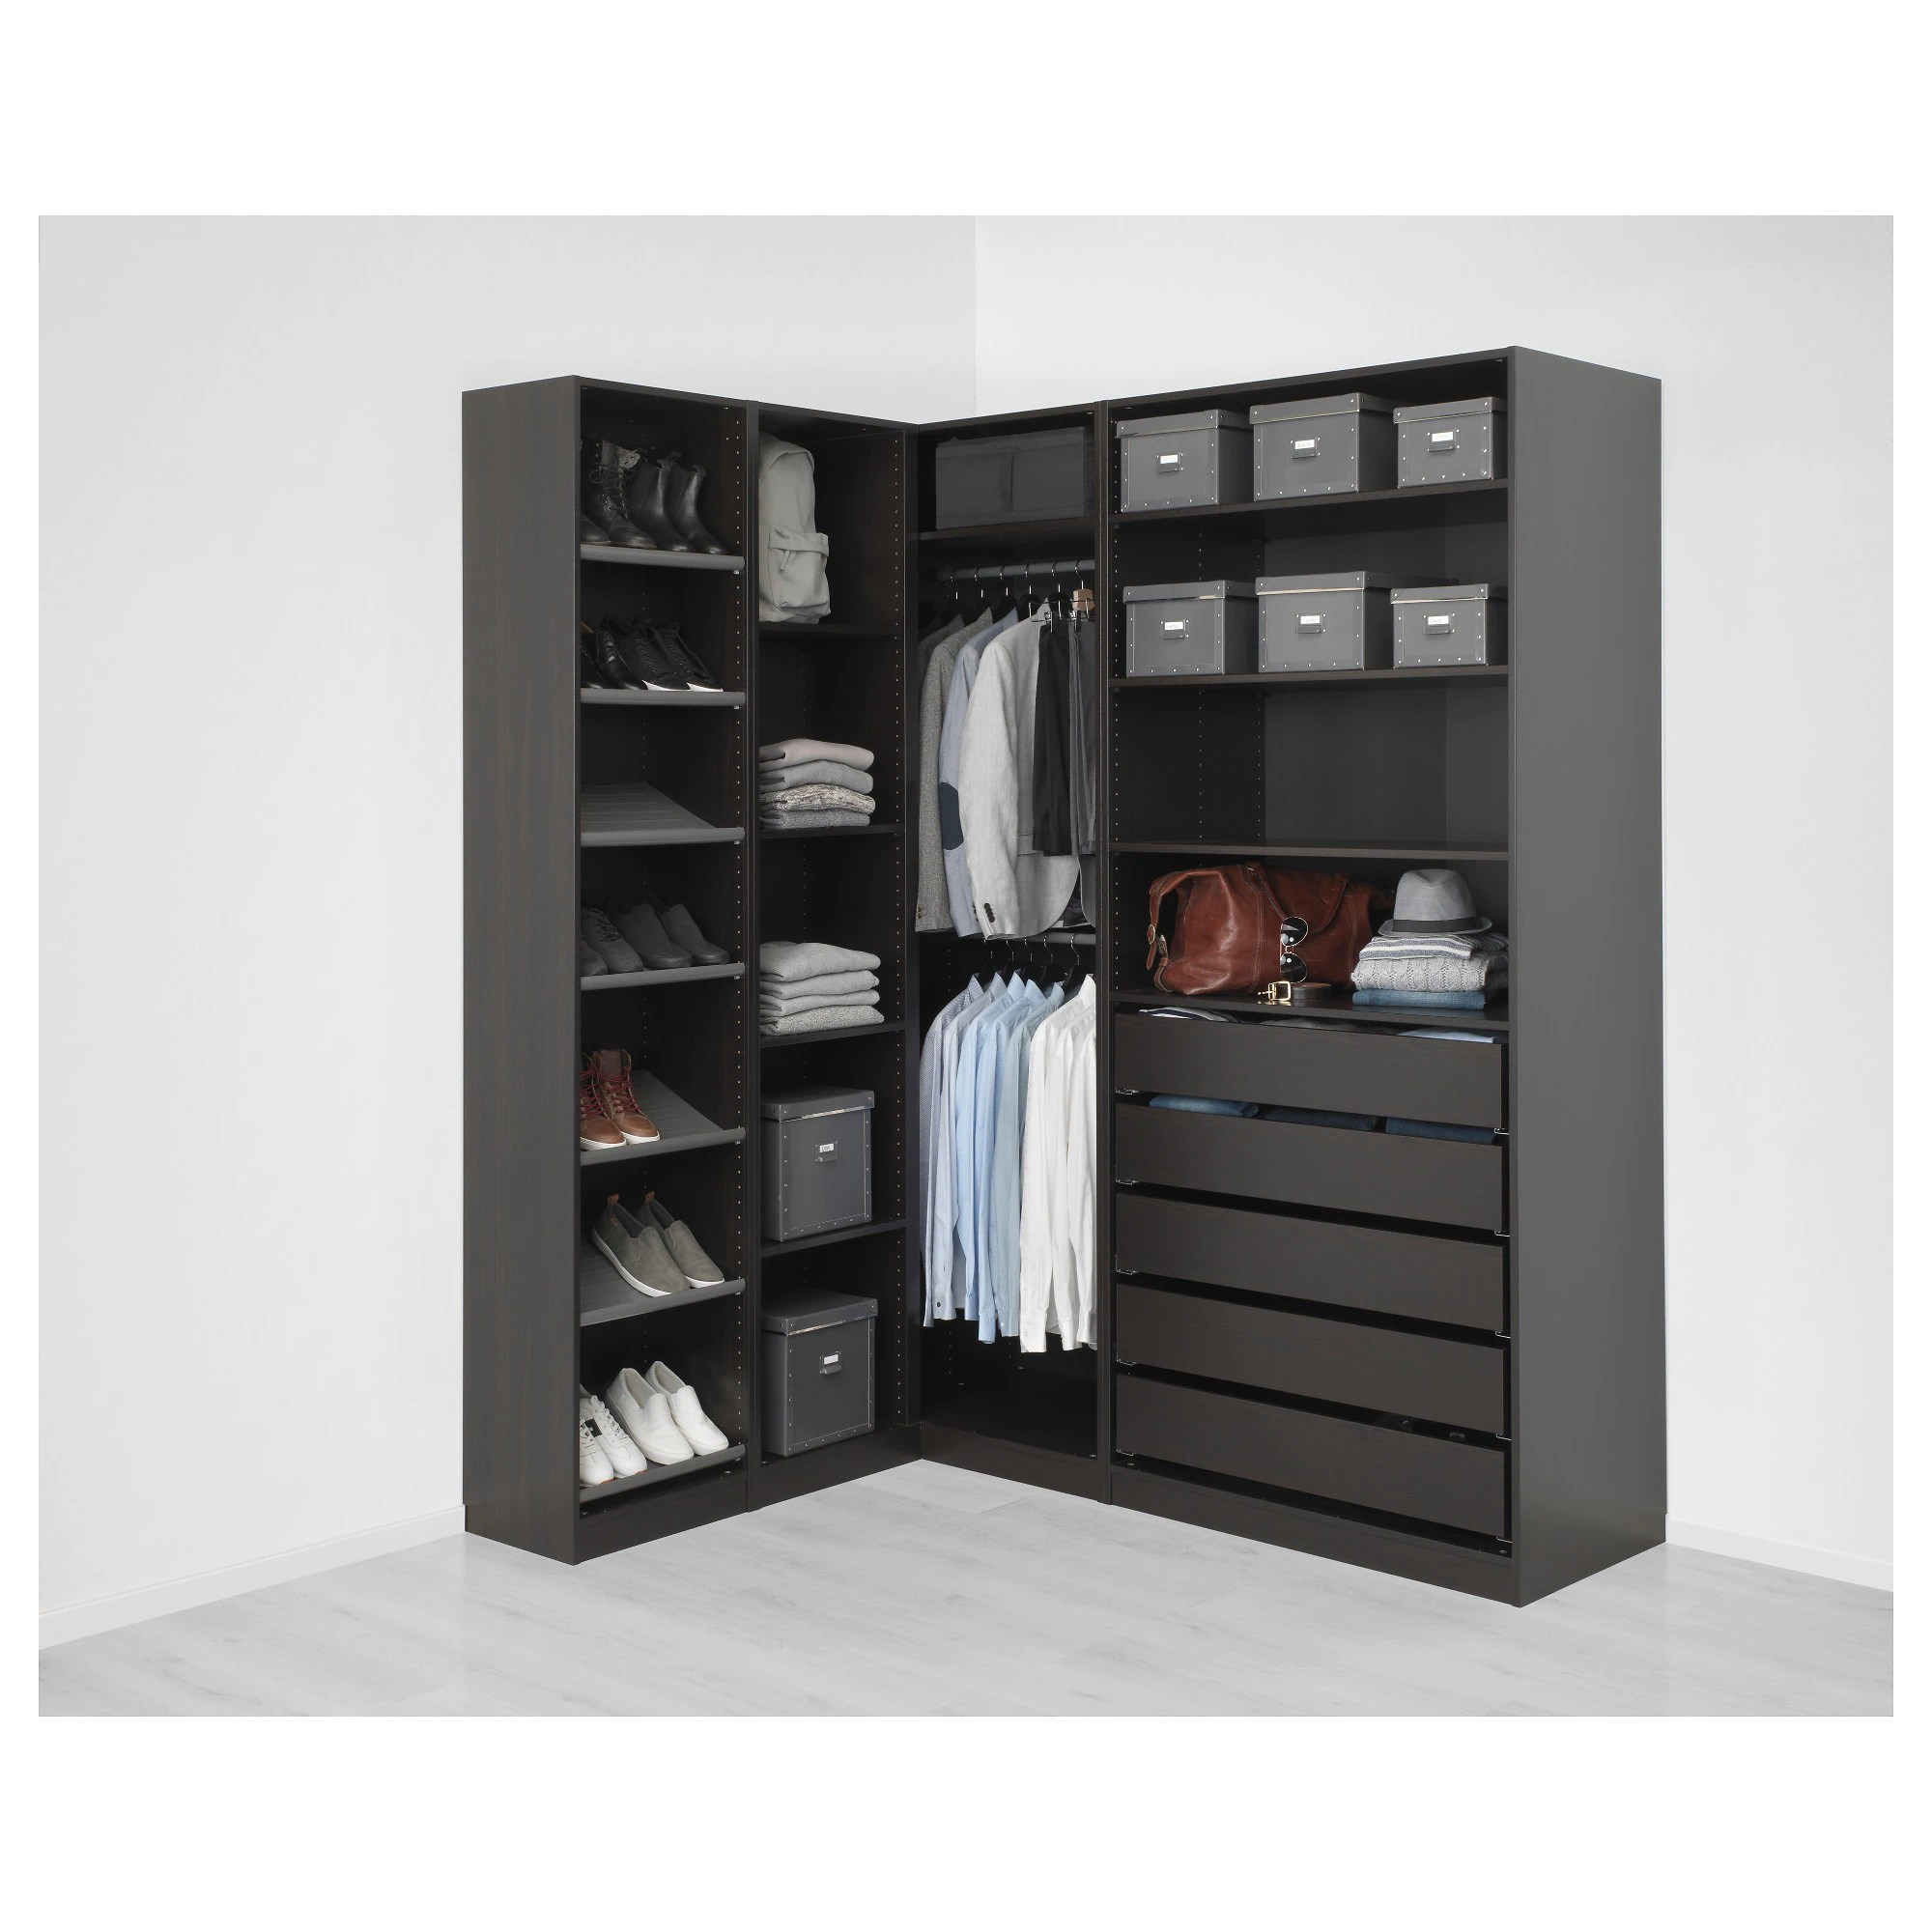 Ikea Guardaroba Pax Planner Pax Corner Wardrobe Black Brown